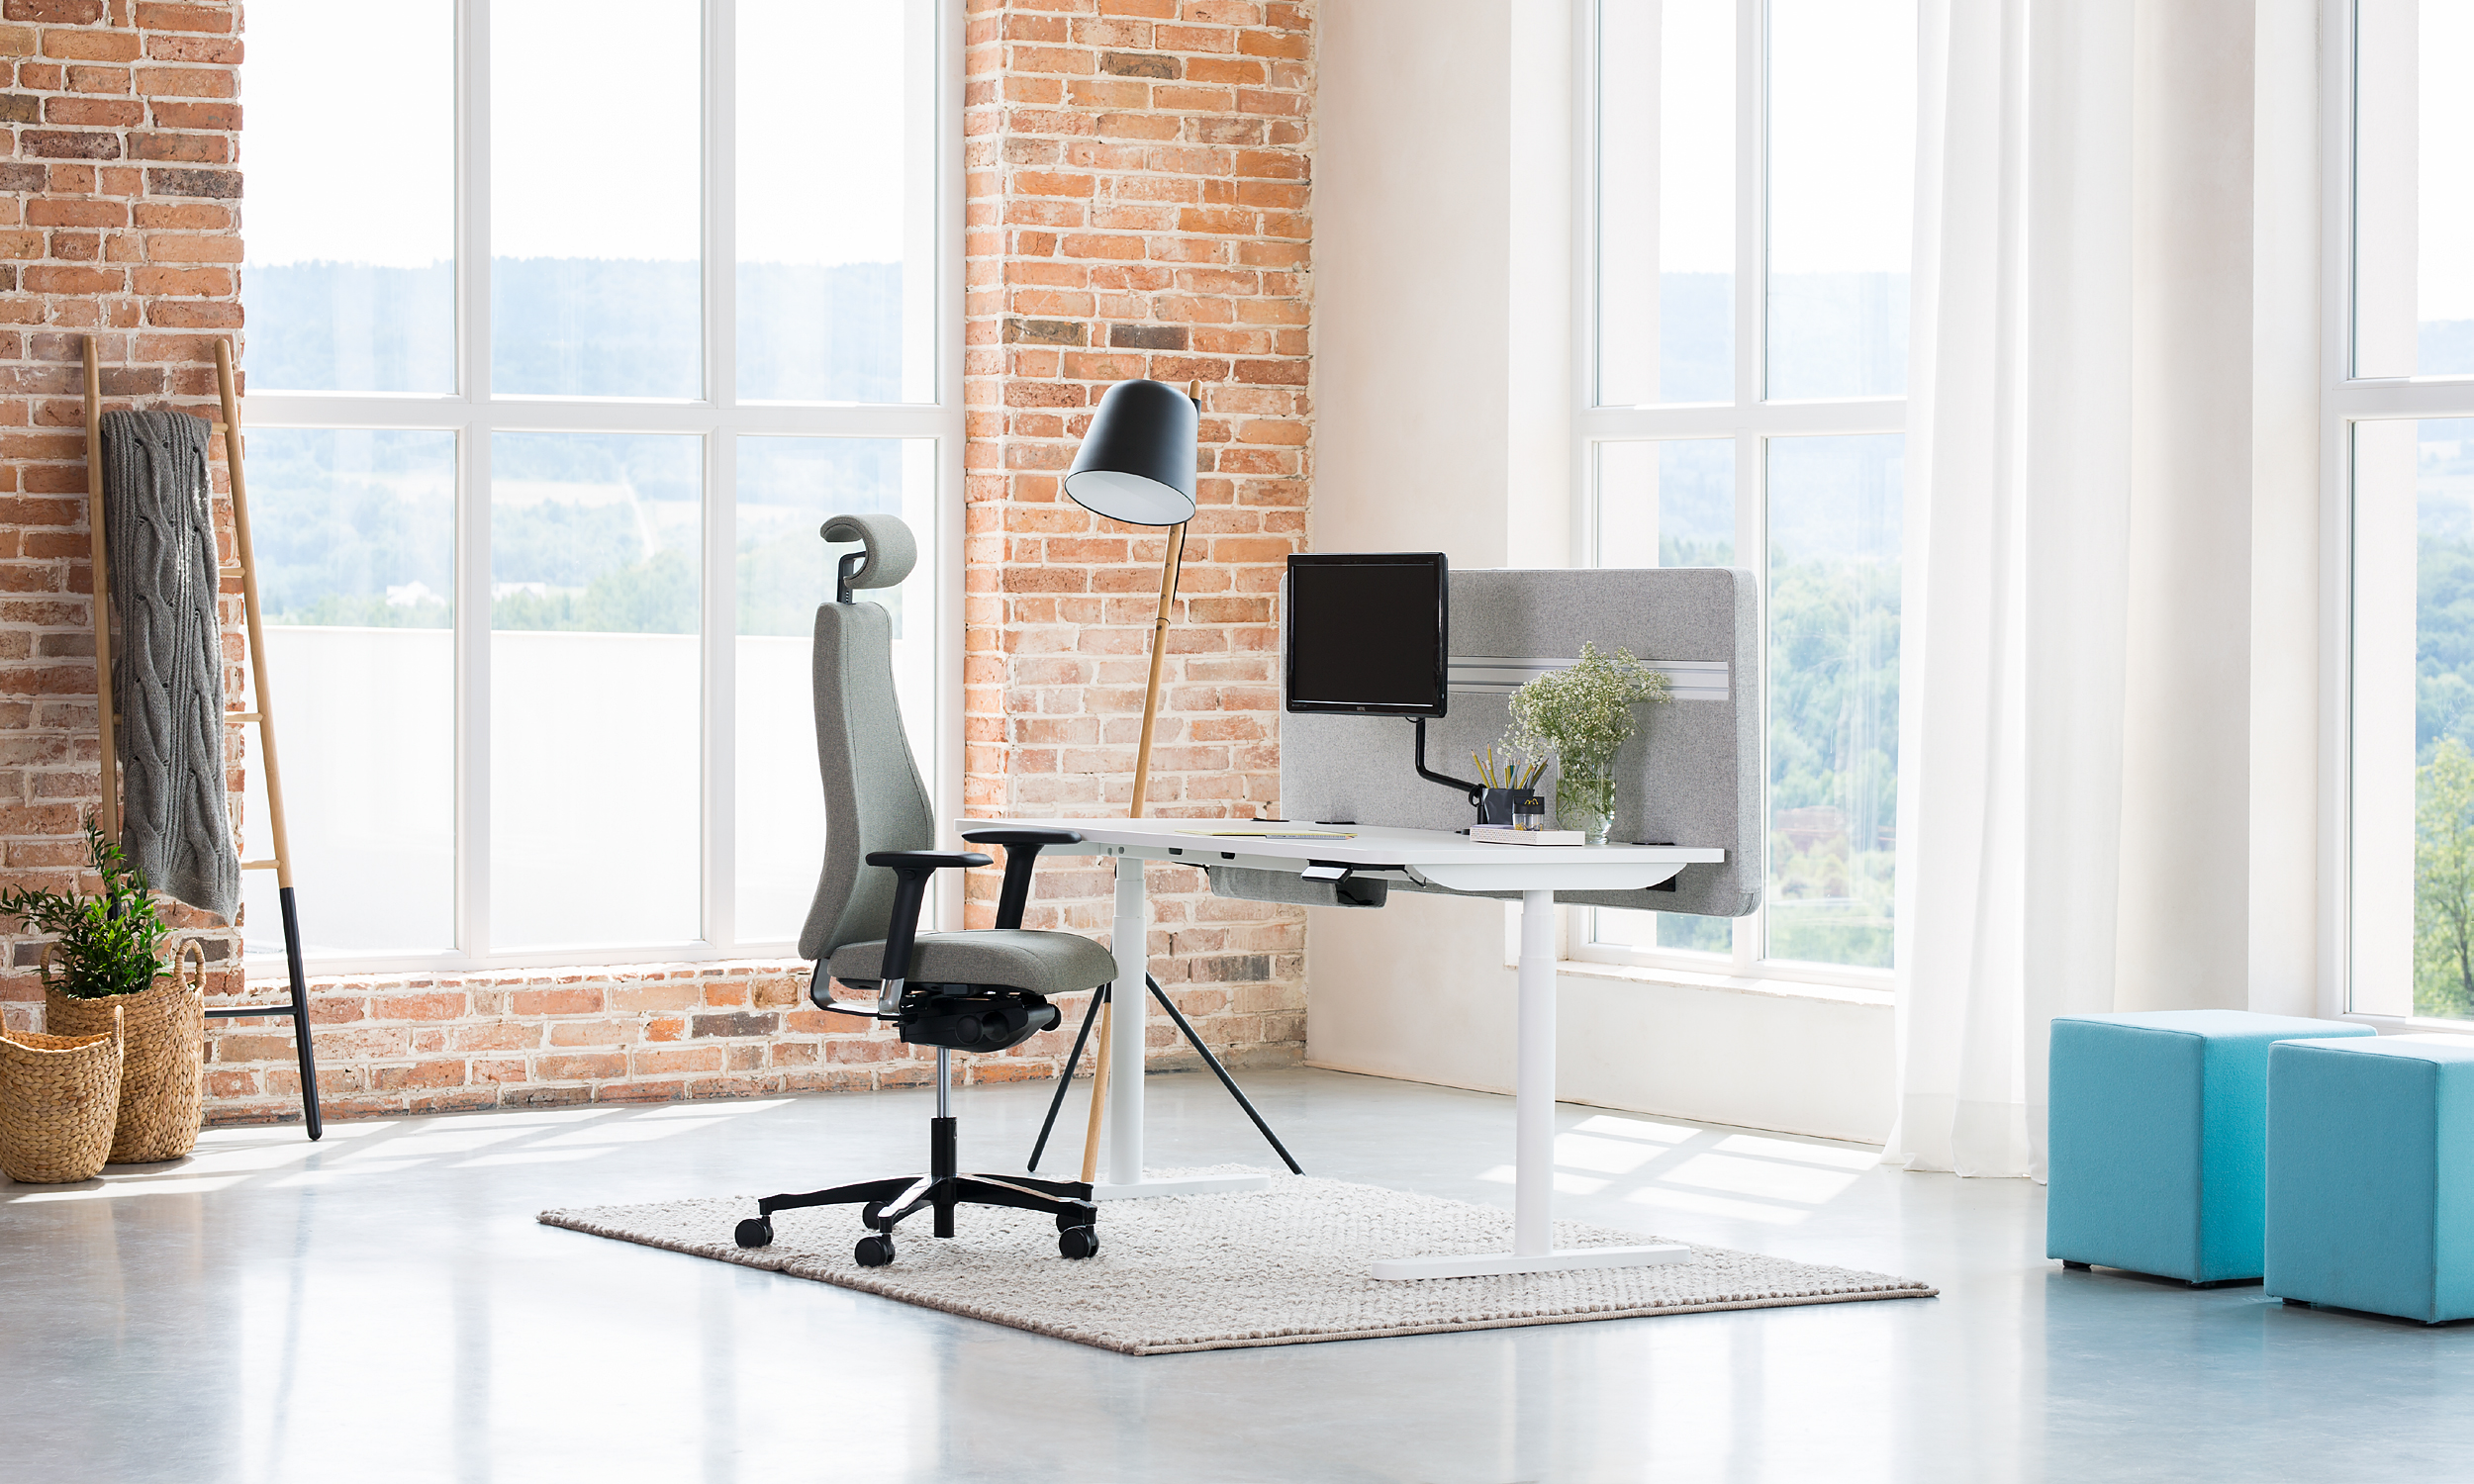 Viden chair with scandinavian design and ergonomics